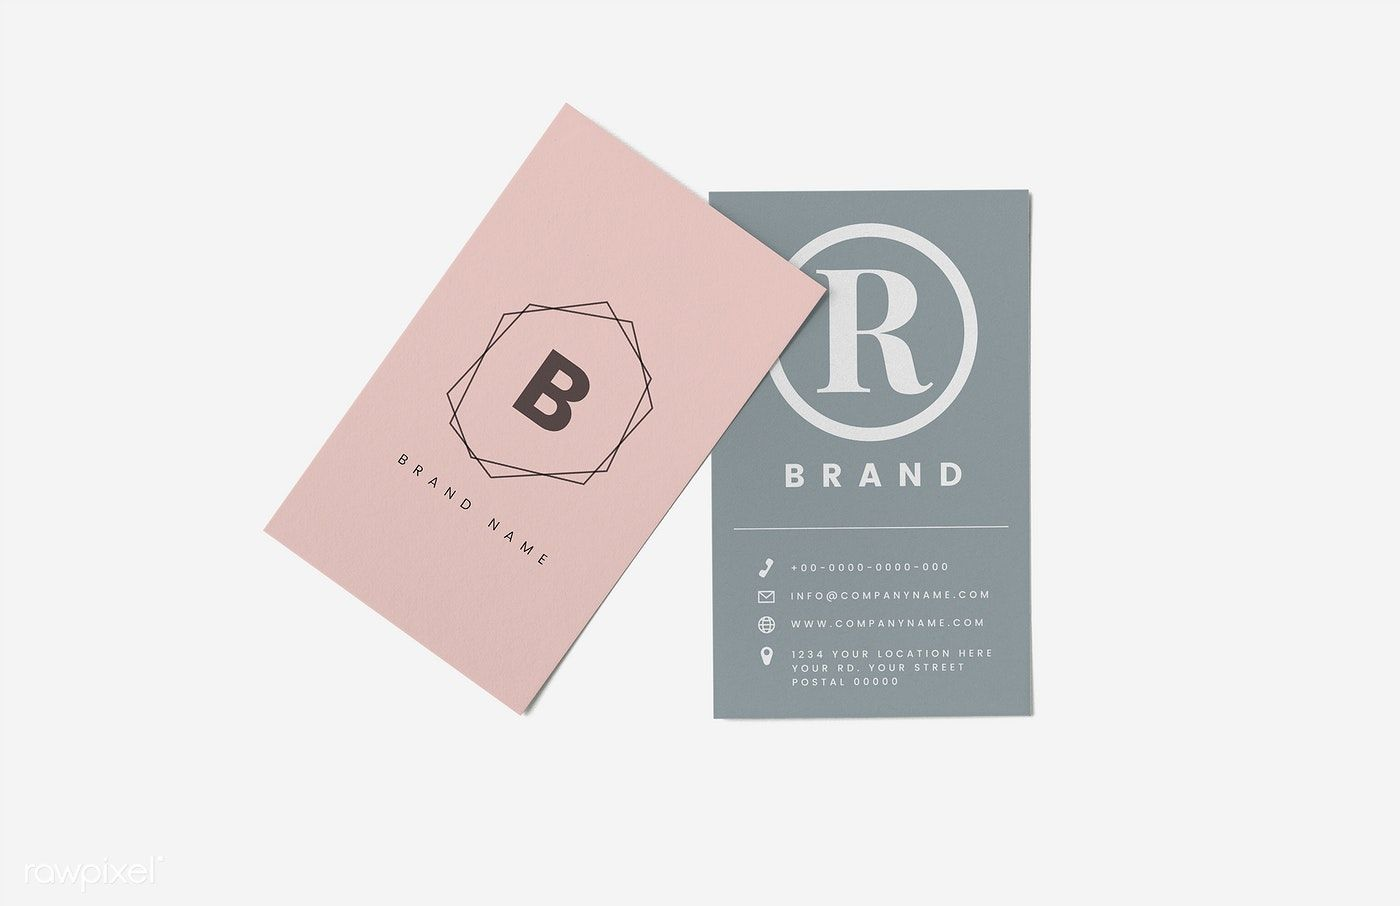 Business Card And Name Card Mockup Free Image By Rawpixel Com